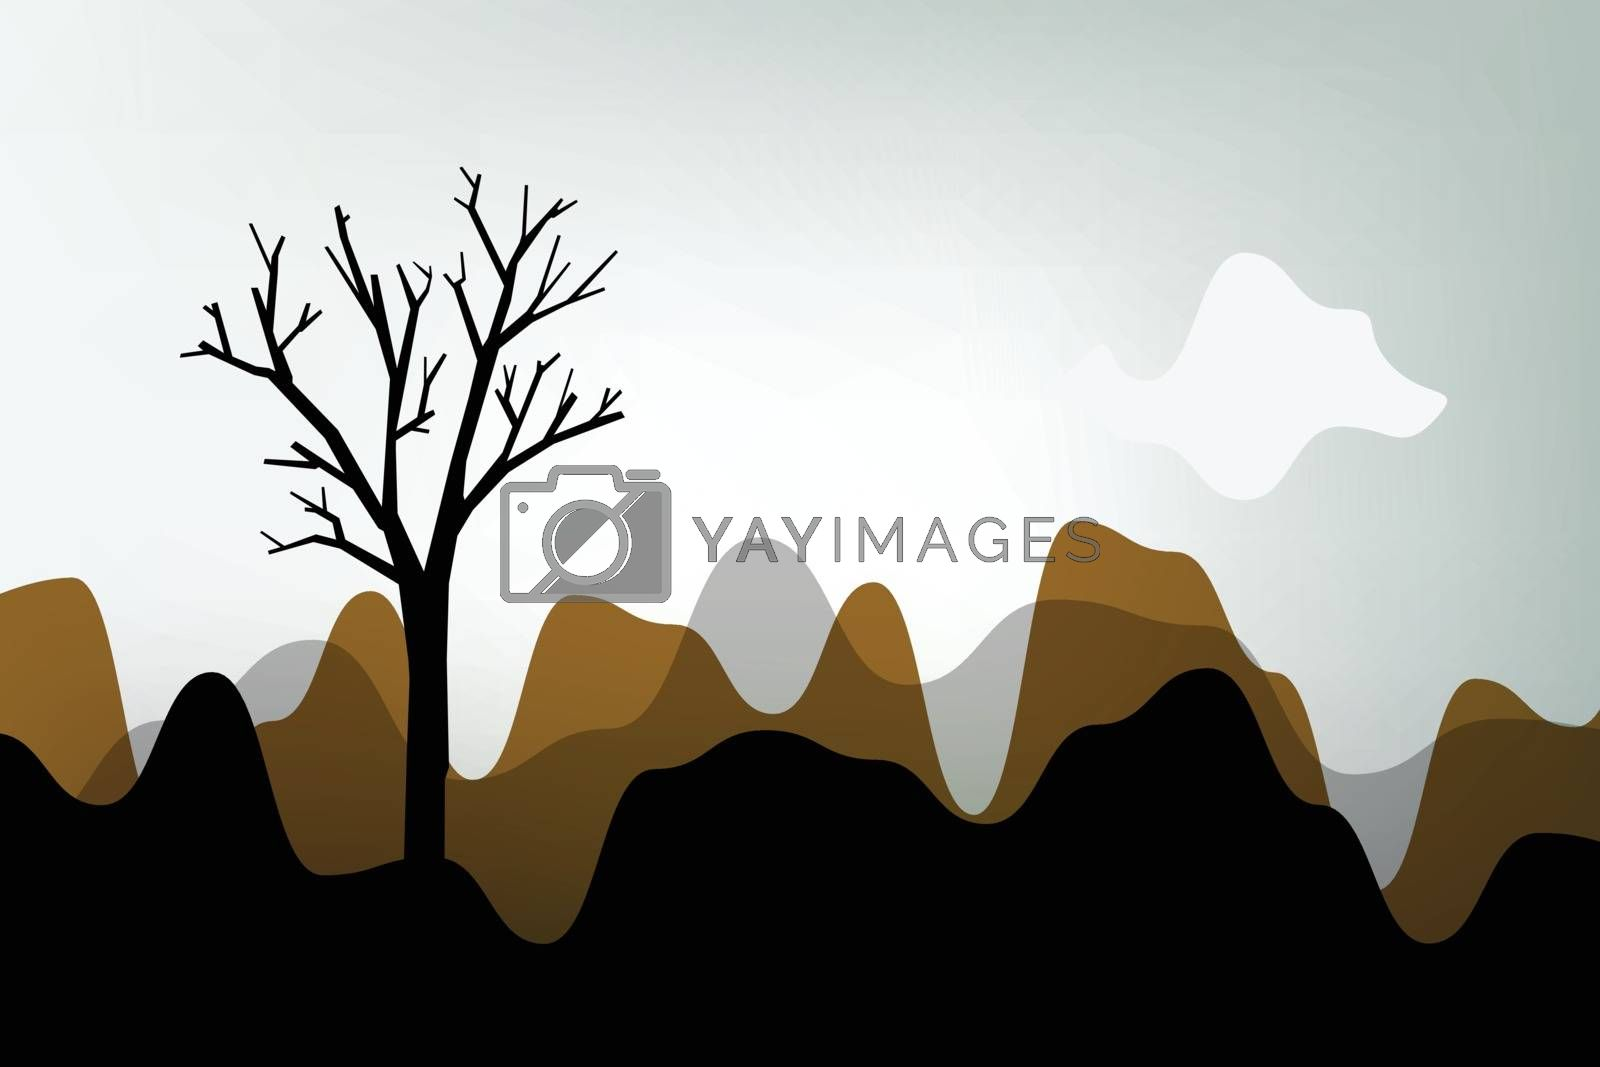 Autumn landscape, tree silhouette on abstract stylish scenery